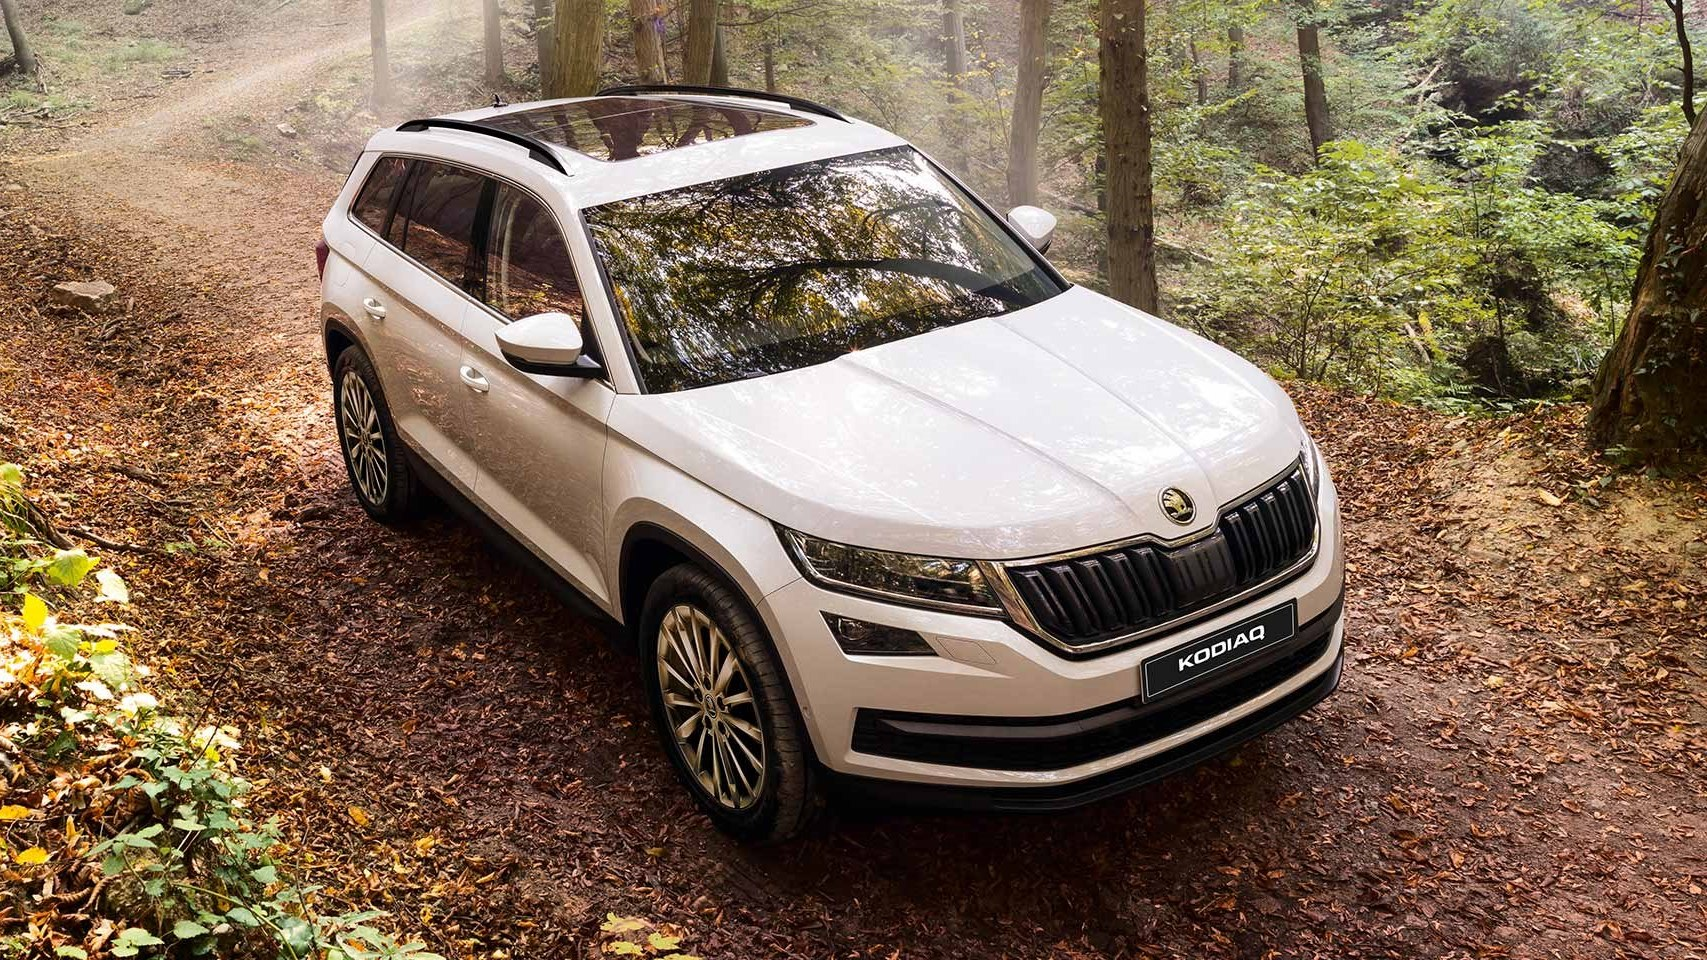 skoda kodiaq priced at rs lakh for india iamabiker. Black Bedroom Furniture Sets. Home Design Ideas